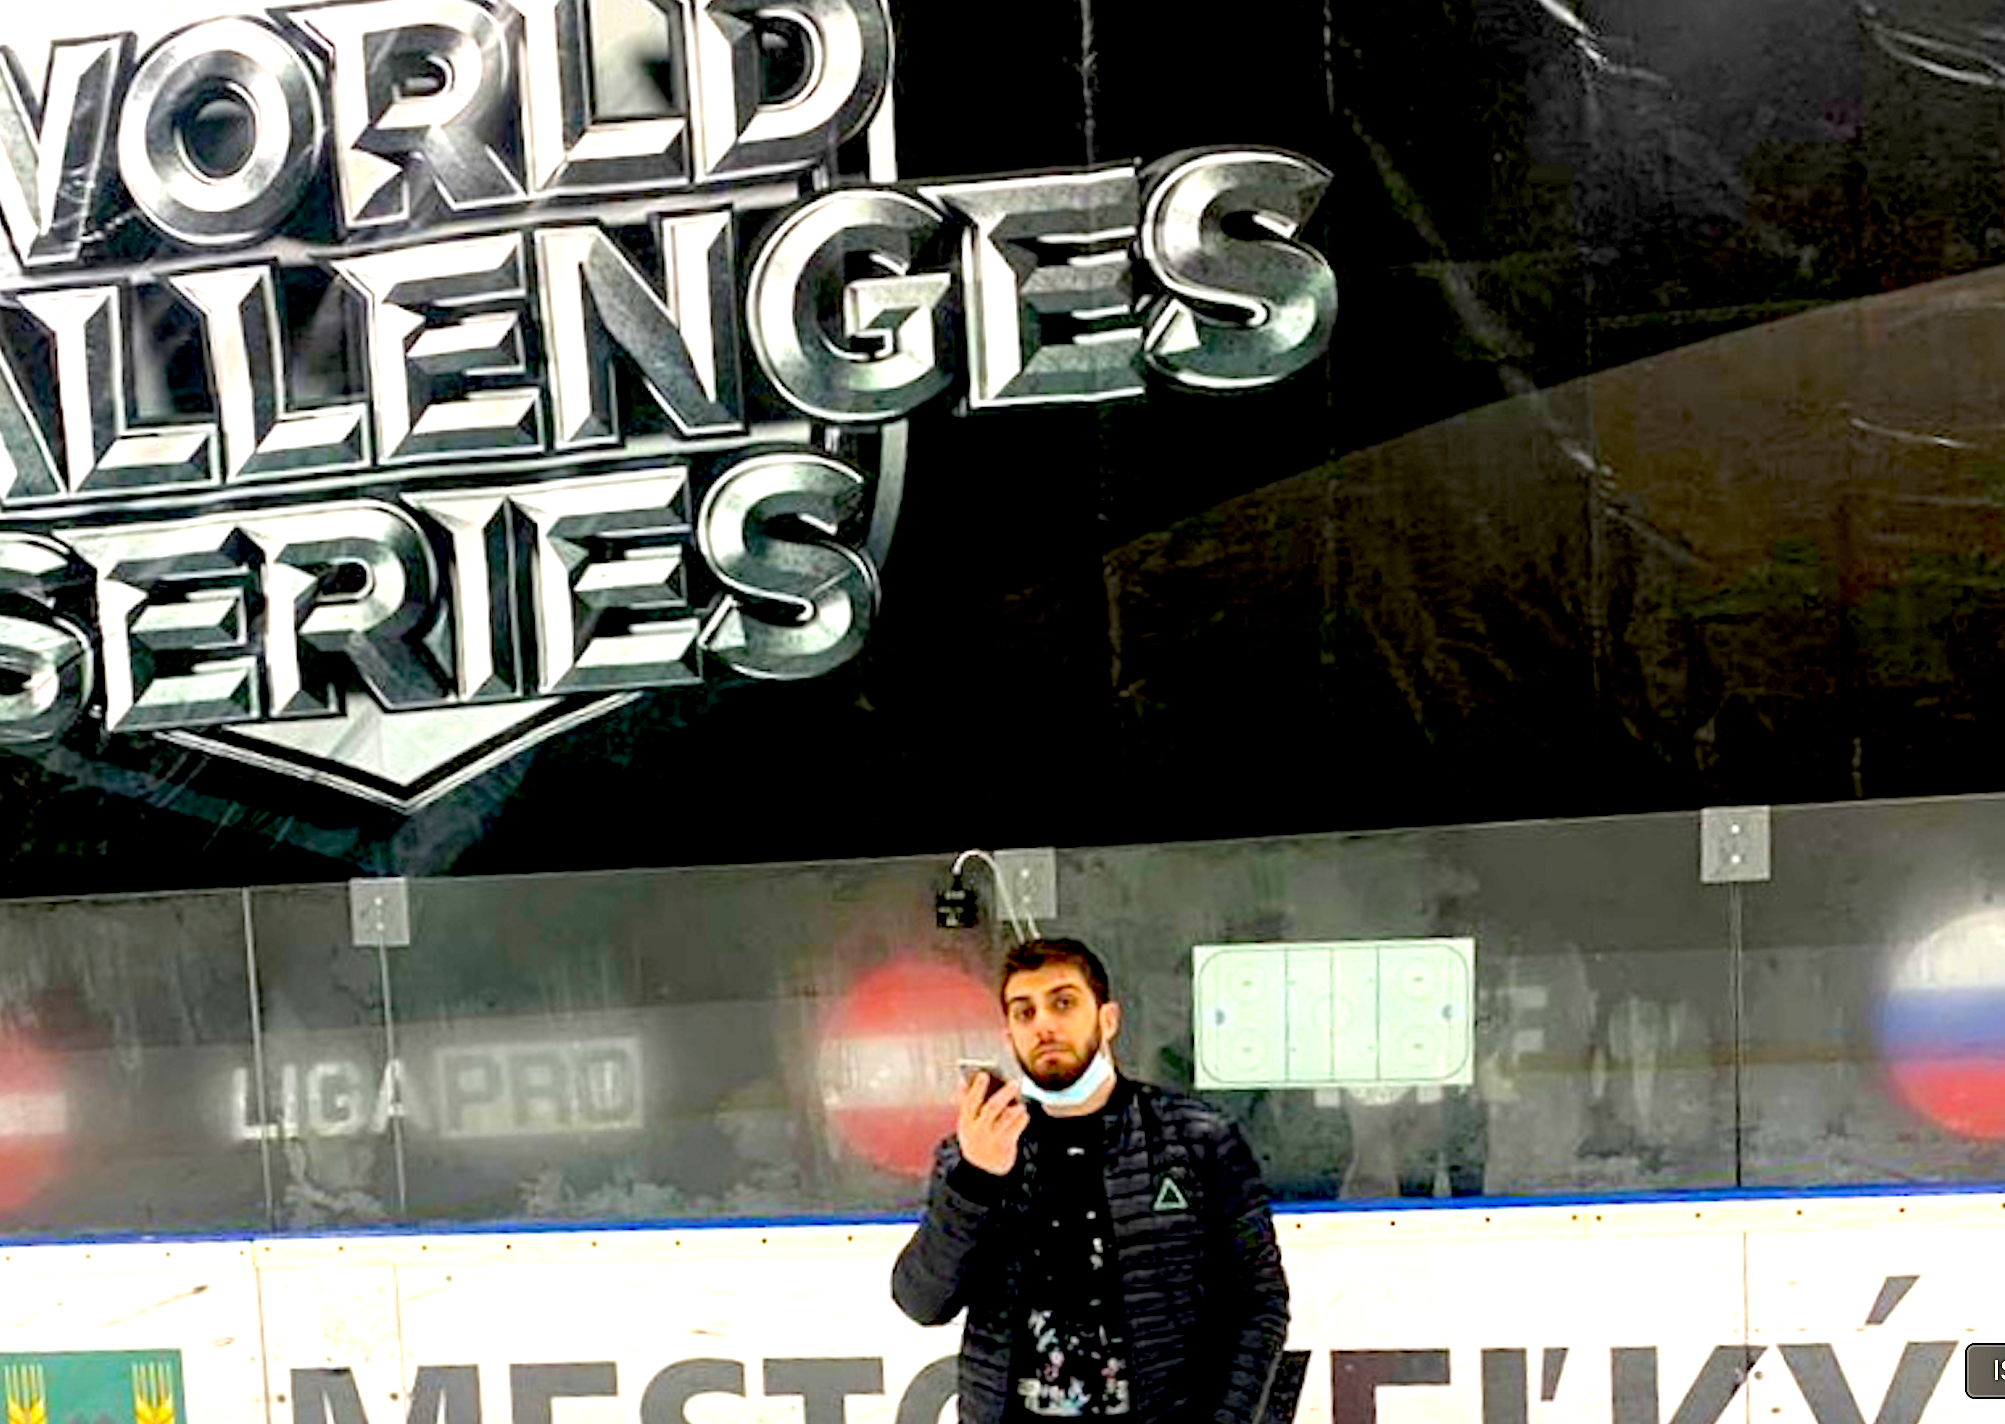 An interview with Garegin Melkumian – the head of organizing committee of the ISHF LIGA PRO SLOVAKIA OPEN SERIES 2020